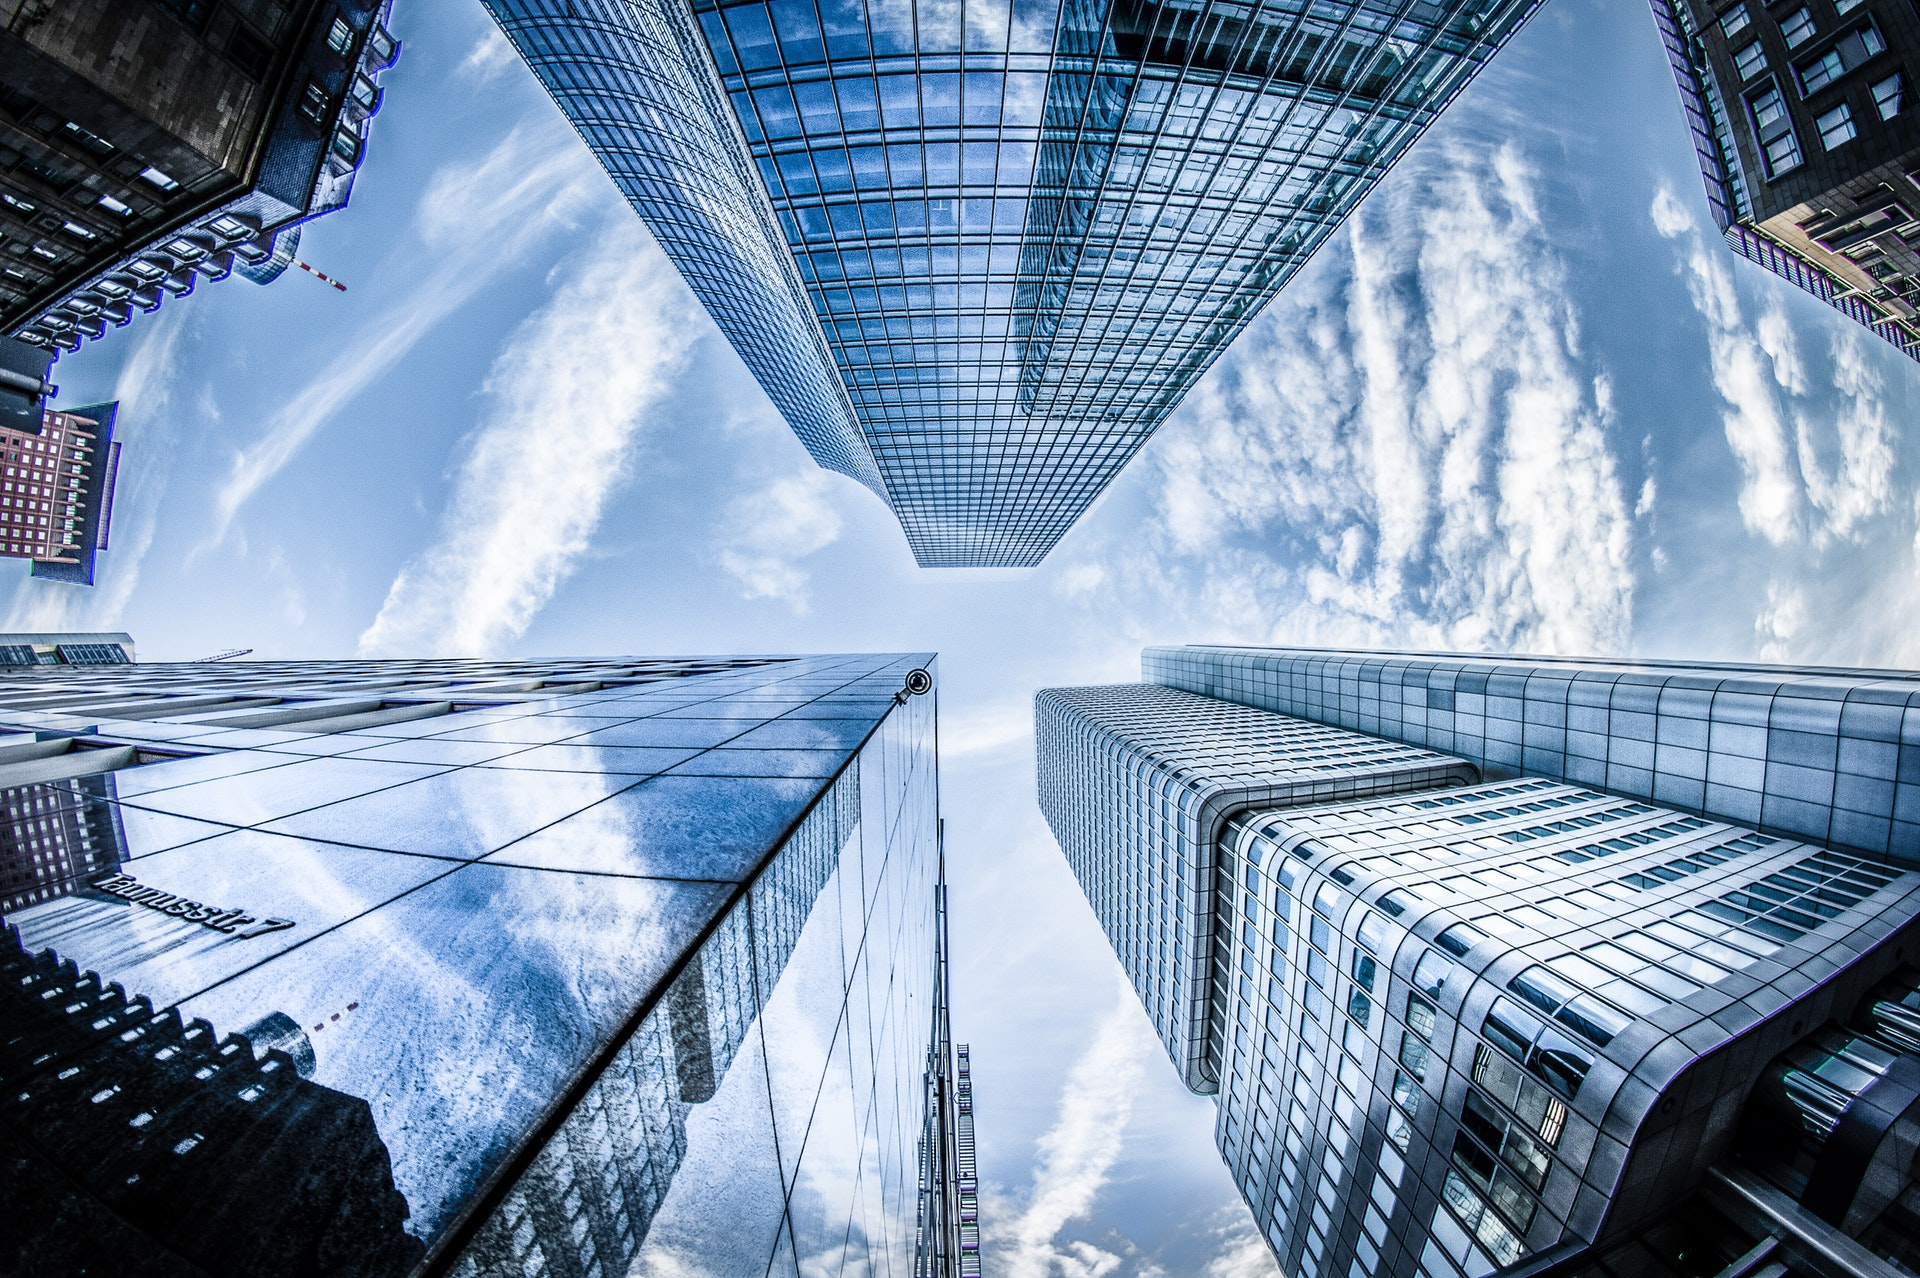 Look up at tall office buildings - Eric Everett Hawes Law Offices